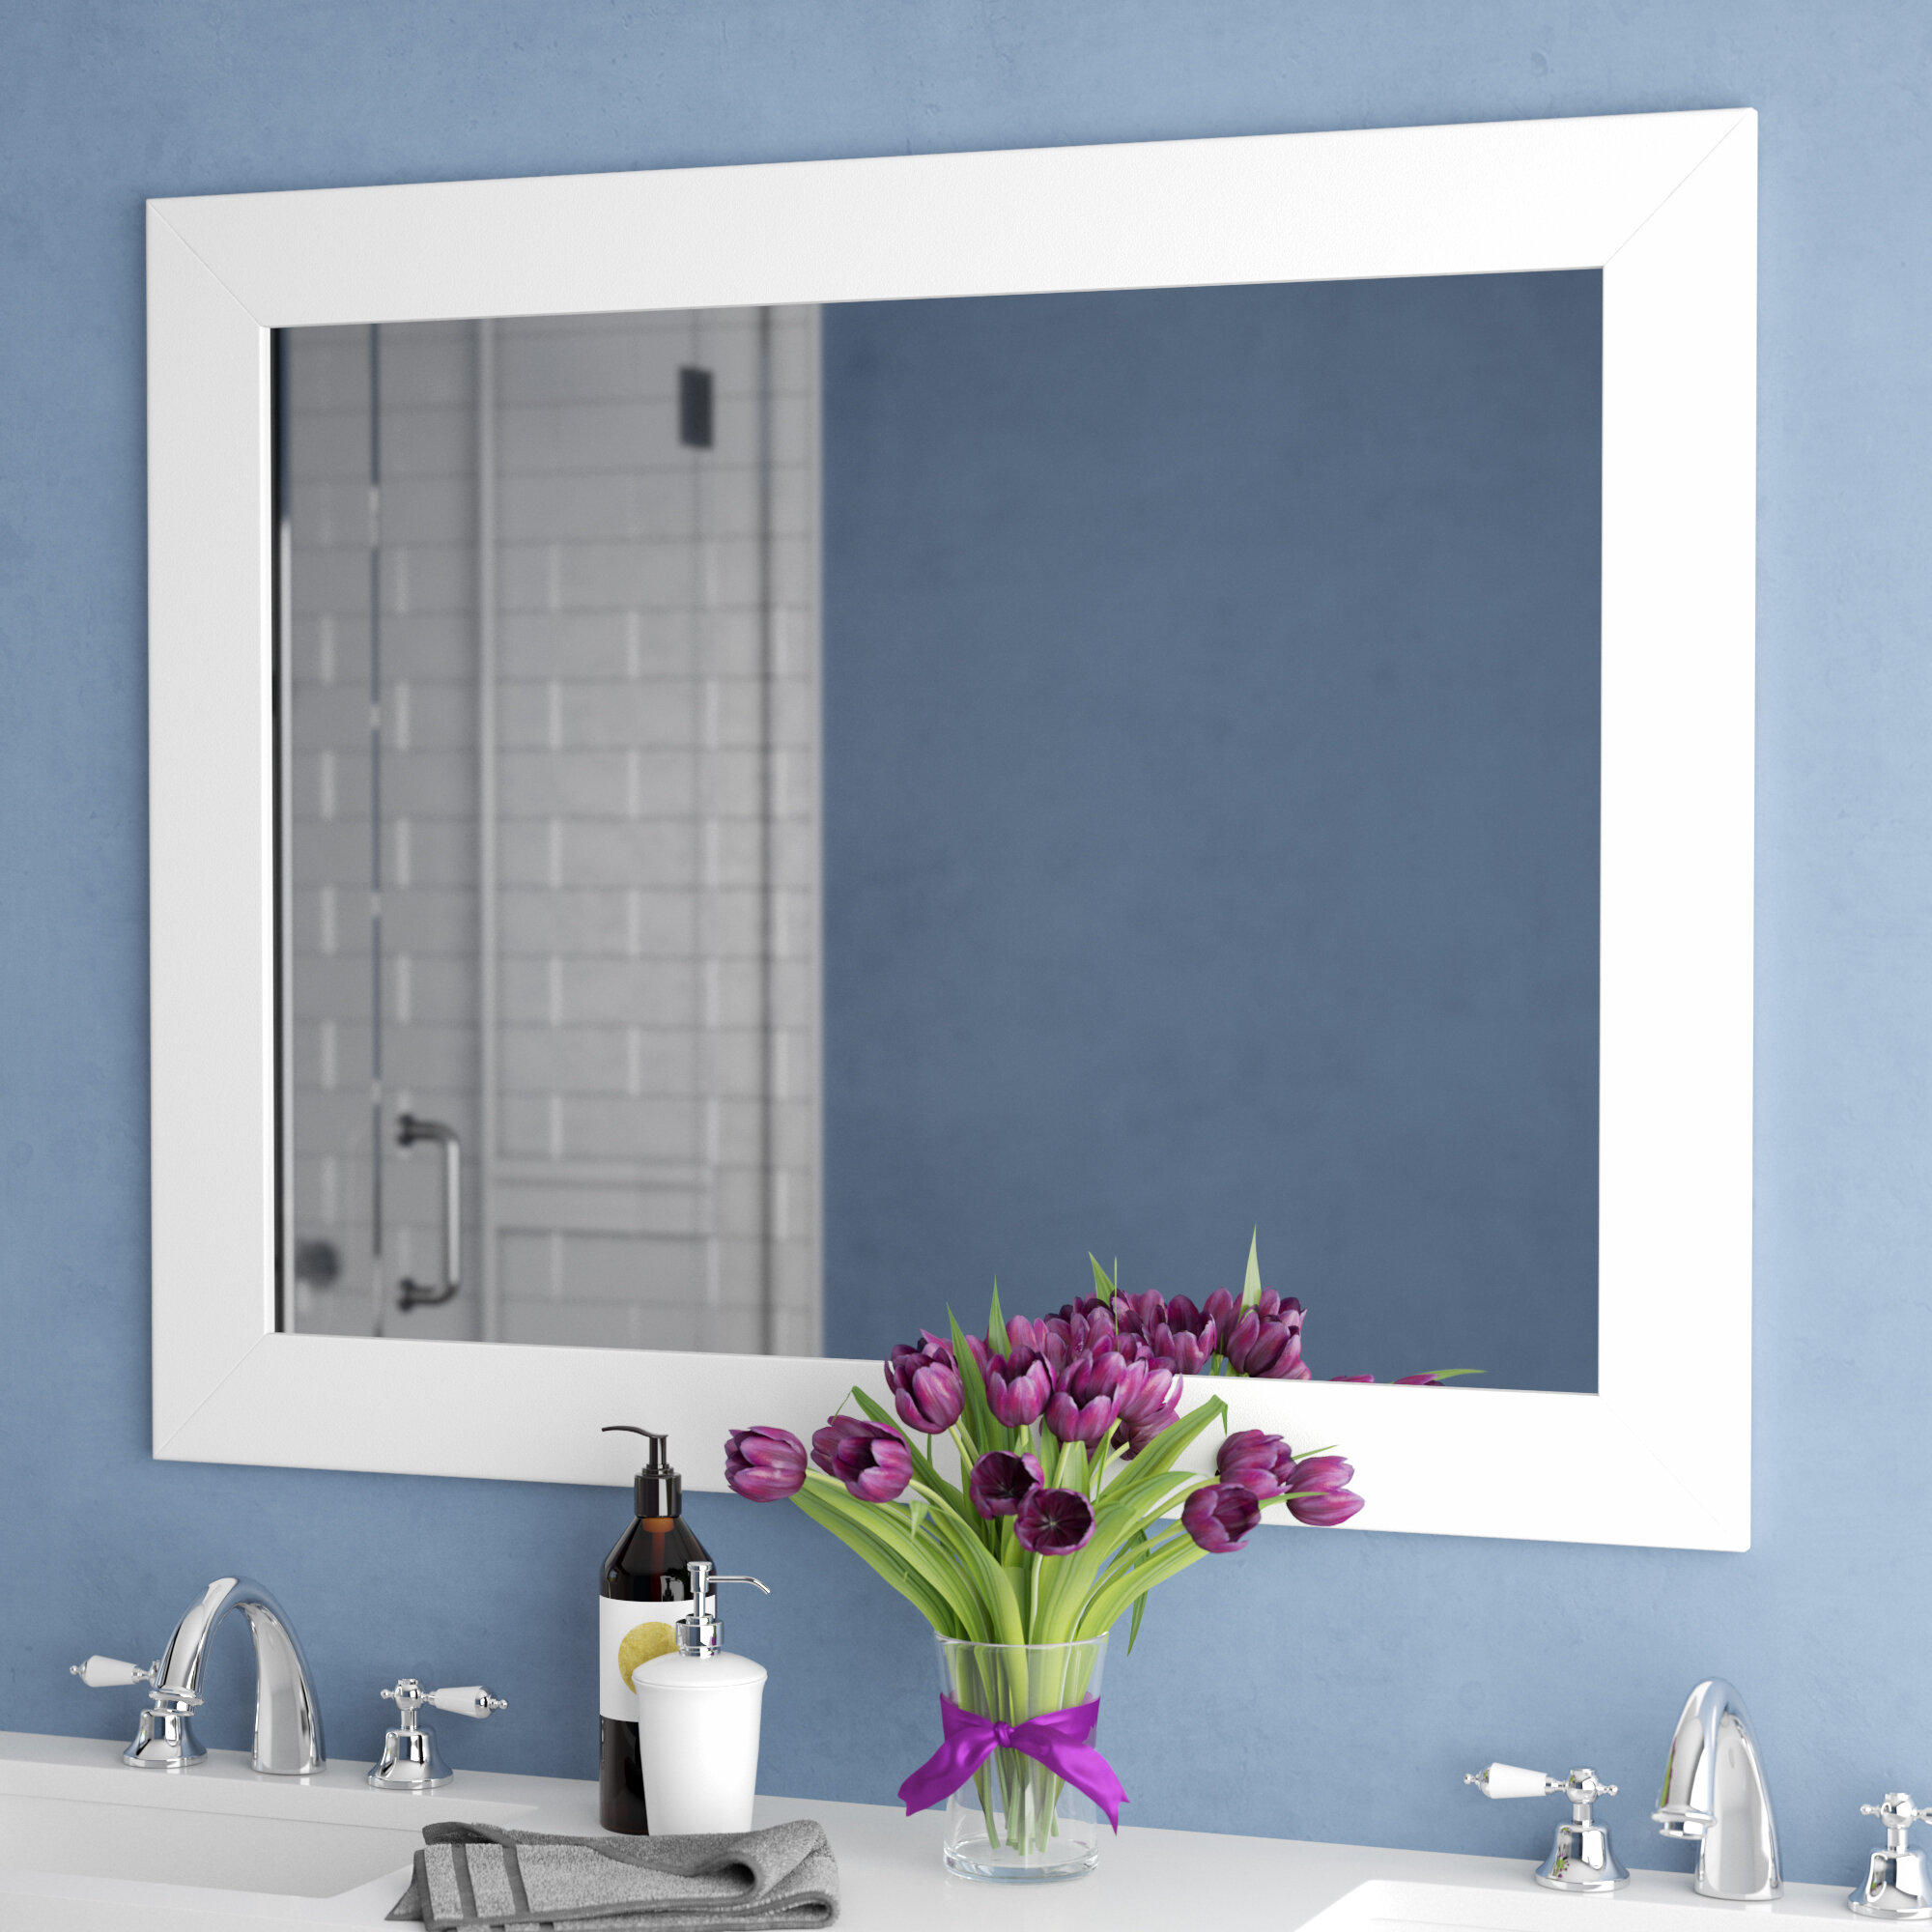 Ebern Designs Kanisha Bathroom Vanity Mirror Reviews Wayfair Ca